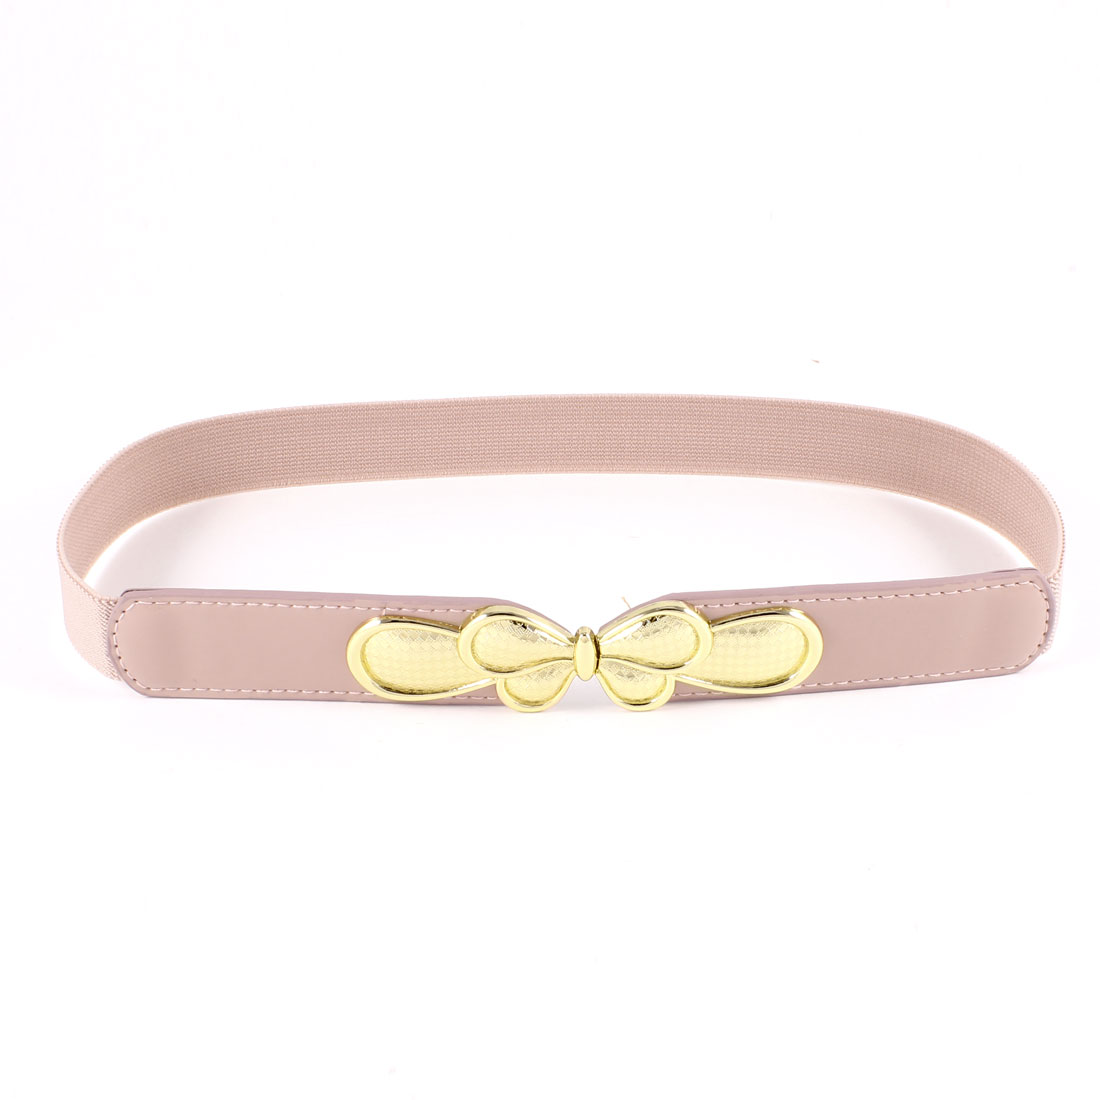 Woman Butterfly Interlock Buckle Thin Skinny Waistband Cinch Waist Belt Pink